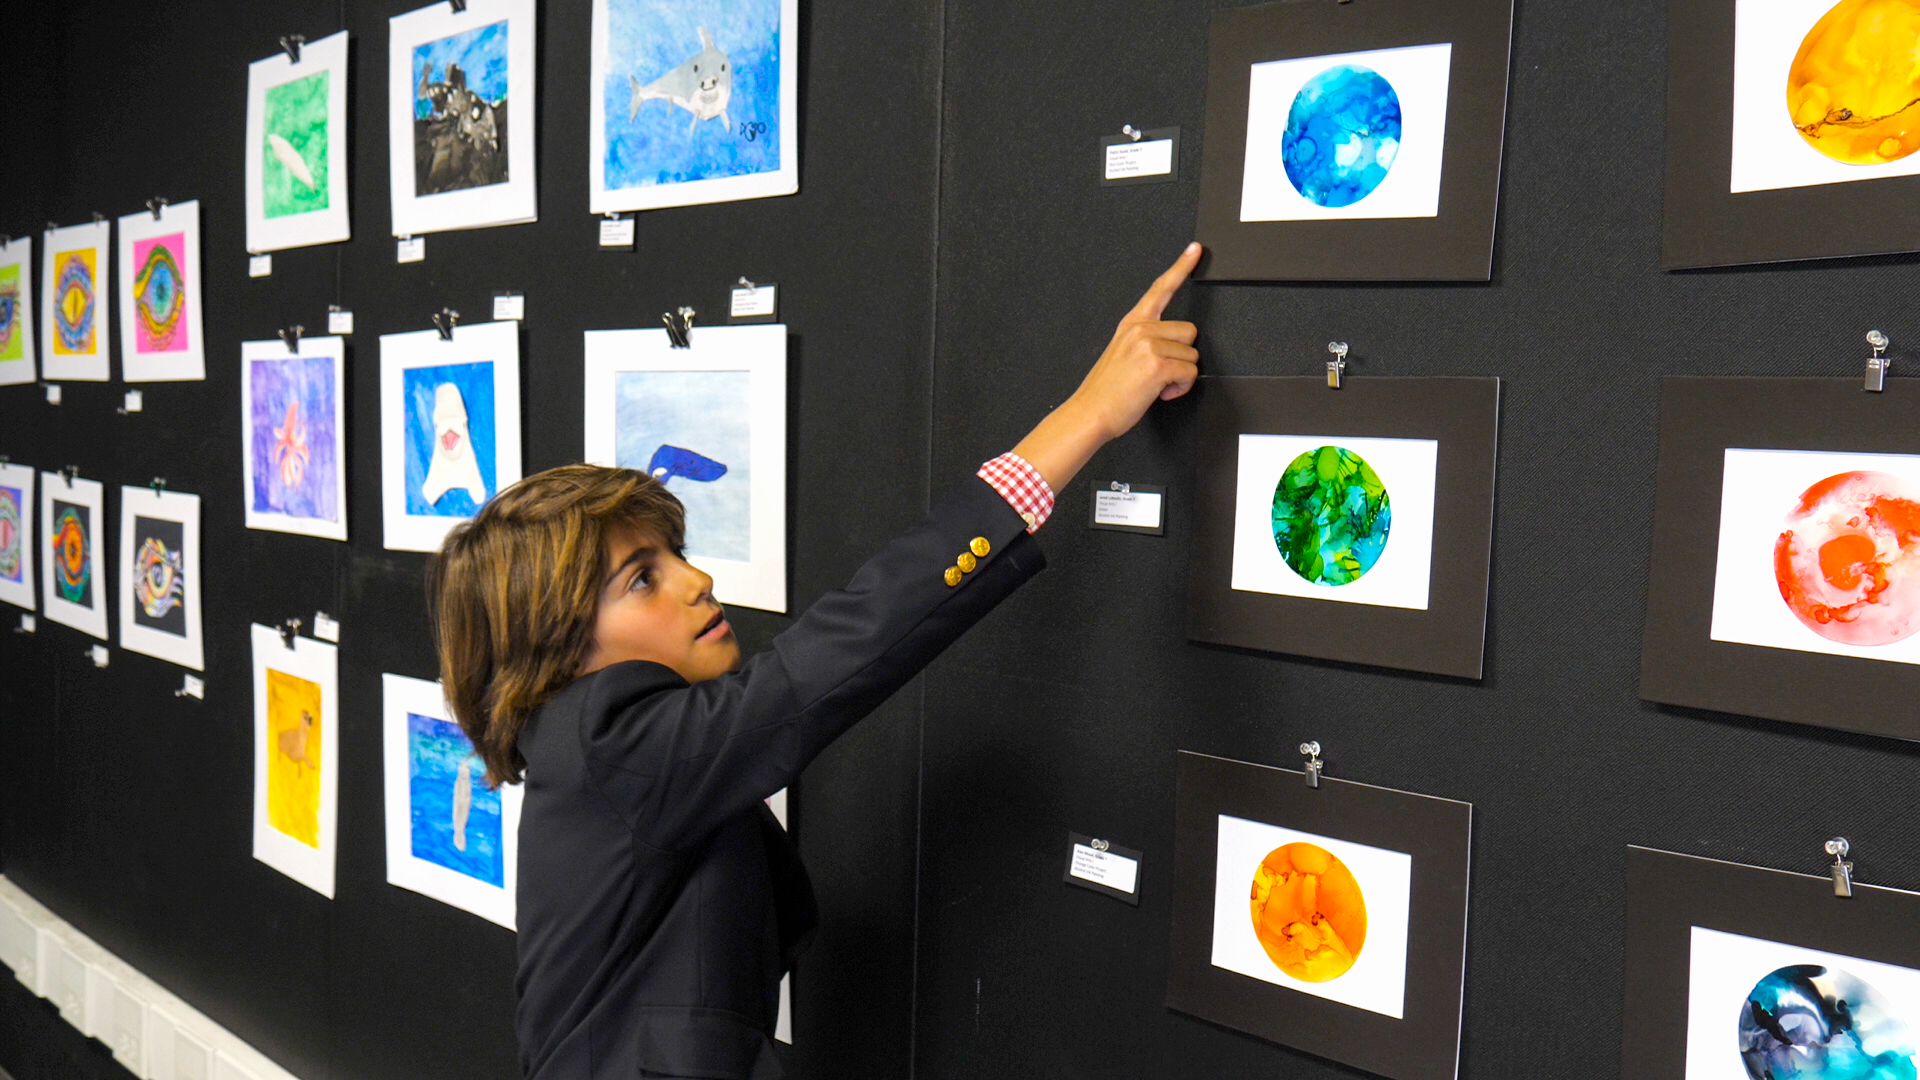 Renaissance 6th grade student showing off work at the all-school art show.